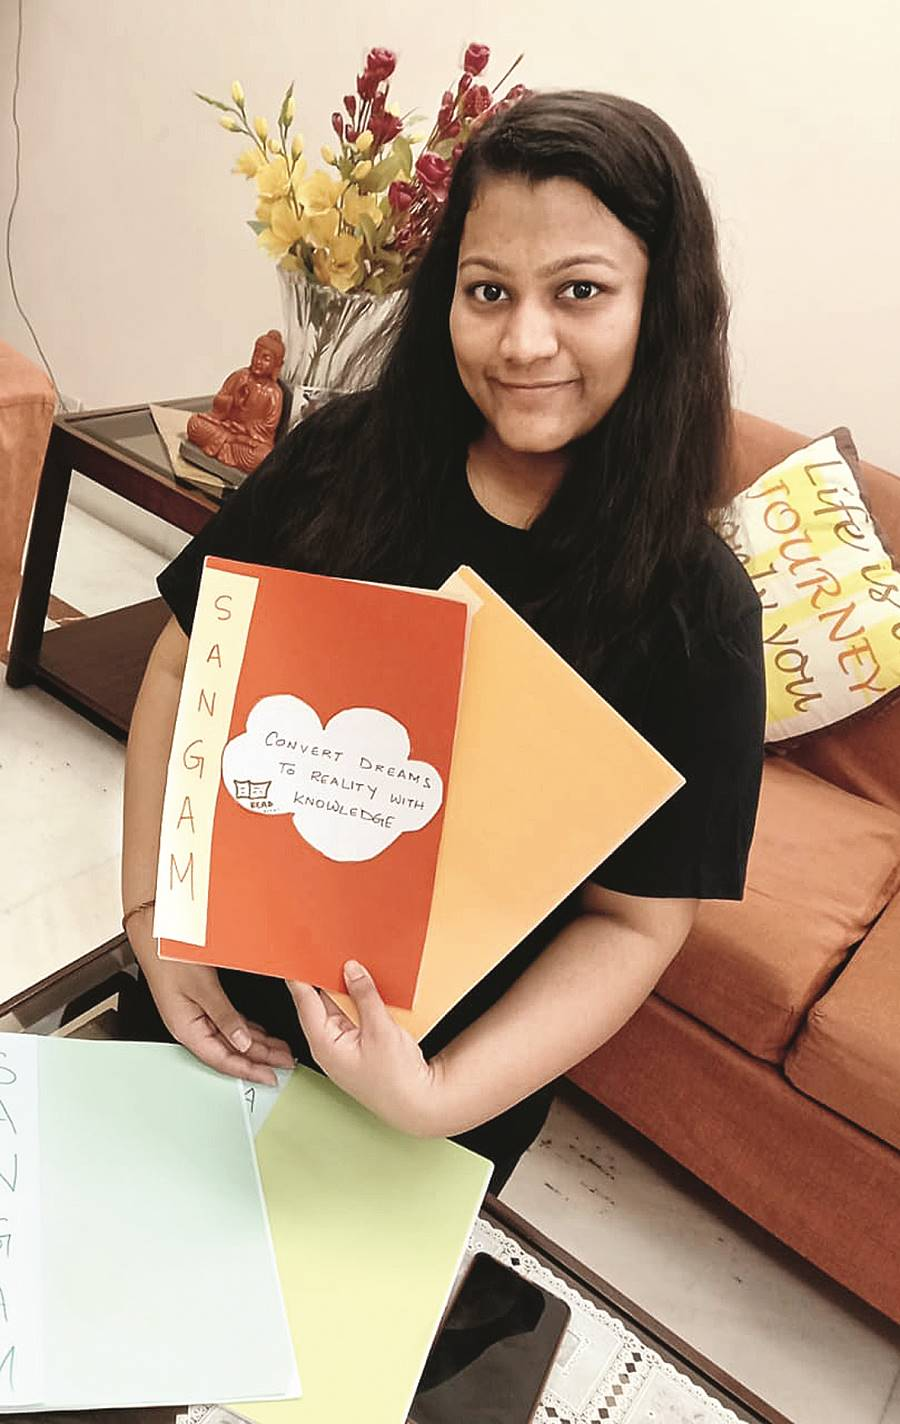 Sukriti with the handmade notebooks